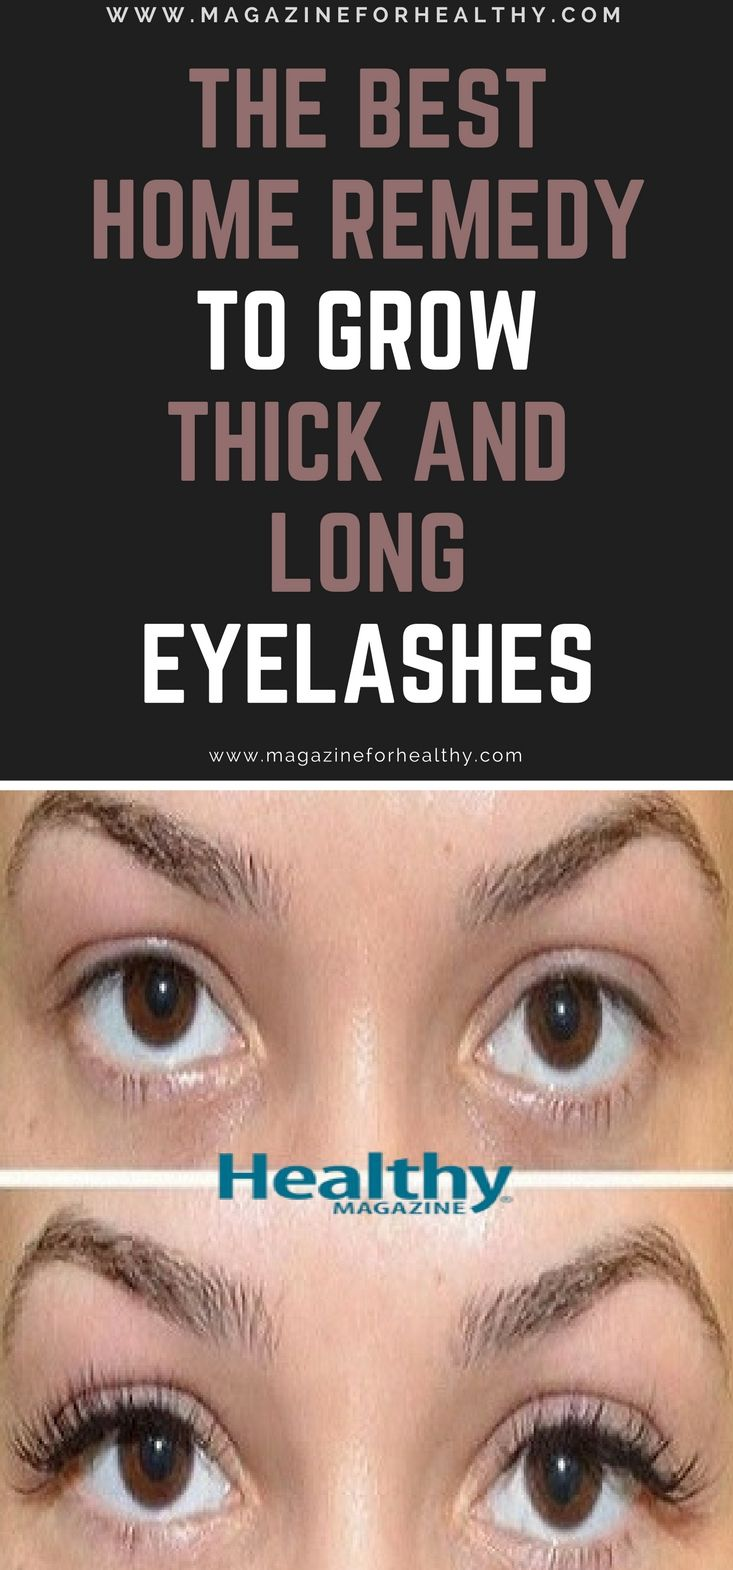 The Best Home Remedy to Grow Thick and Long Eyelashes